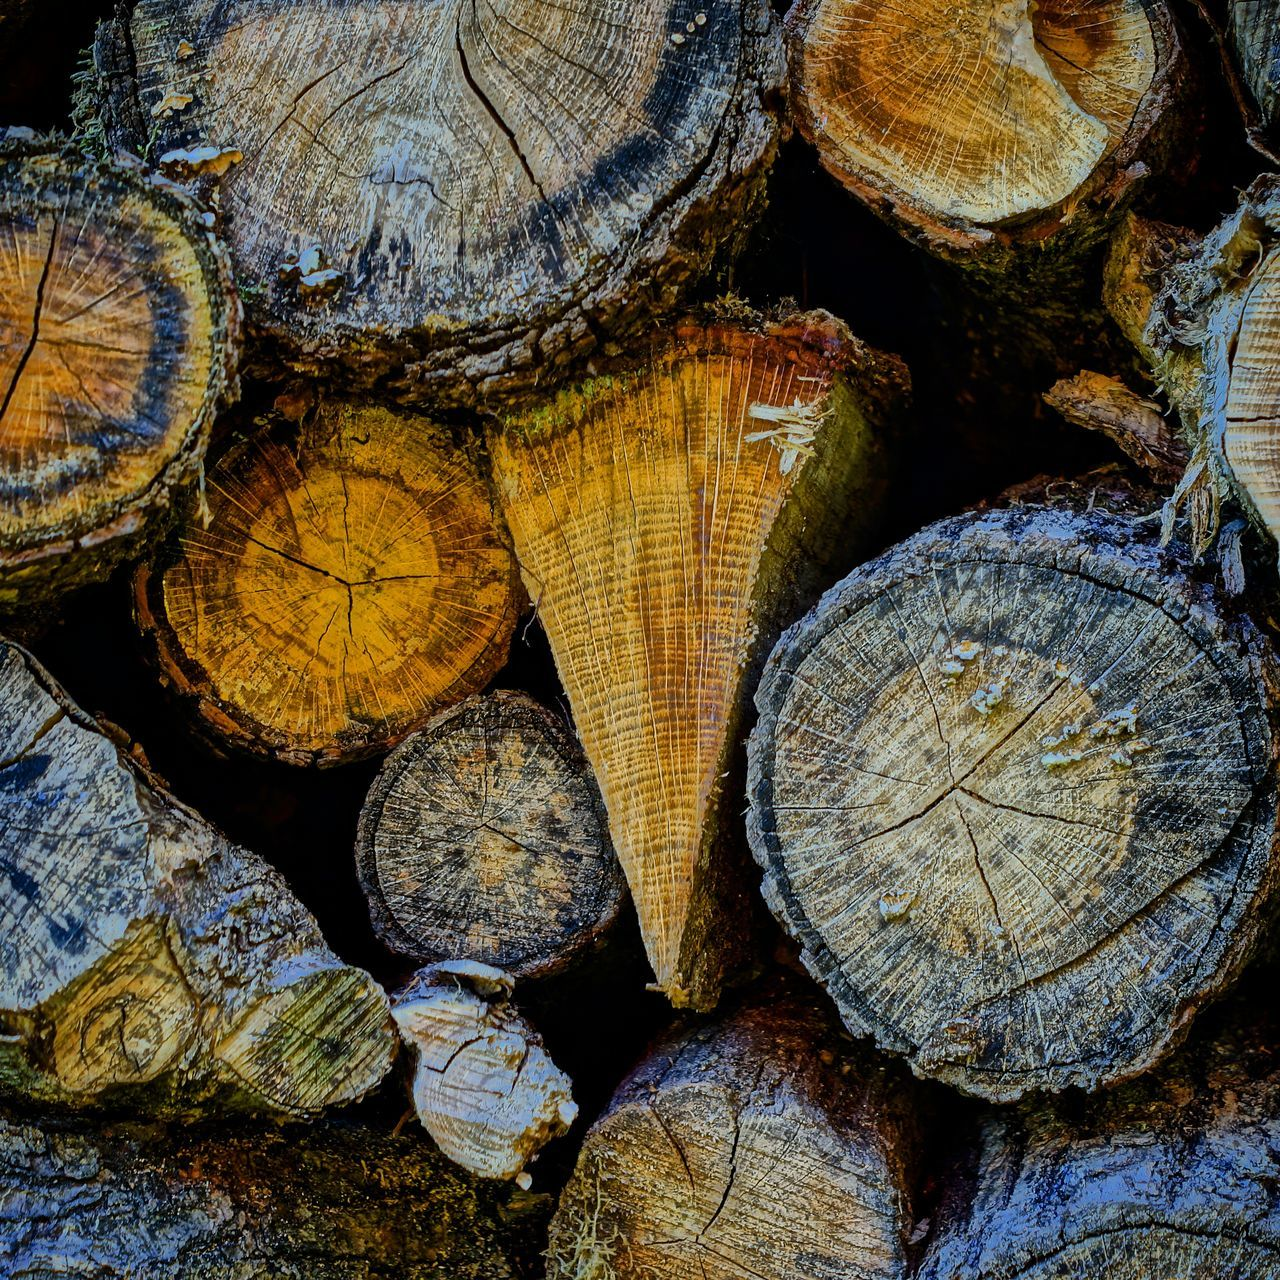 Wood Nature_collection Nature EyeEm Best Shots - Nature Everything In Its Place